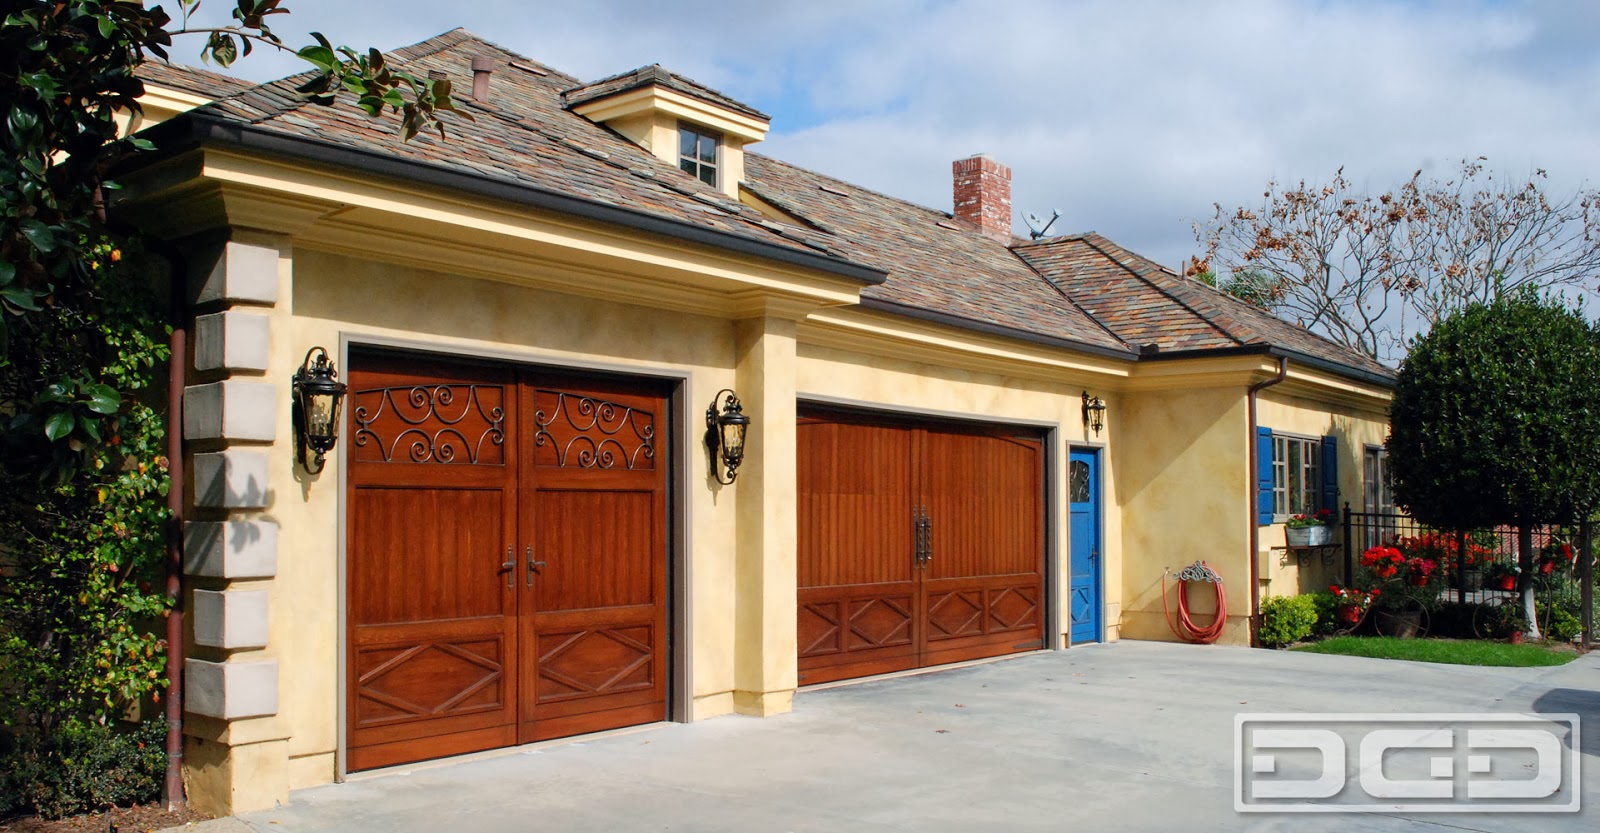 833 #7C3516  Garage Doors (855) 343 3667: Los Angeles CA Custom Wood Garage Door picture/photo Garage Doors Custom 36691600